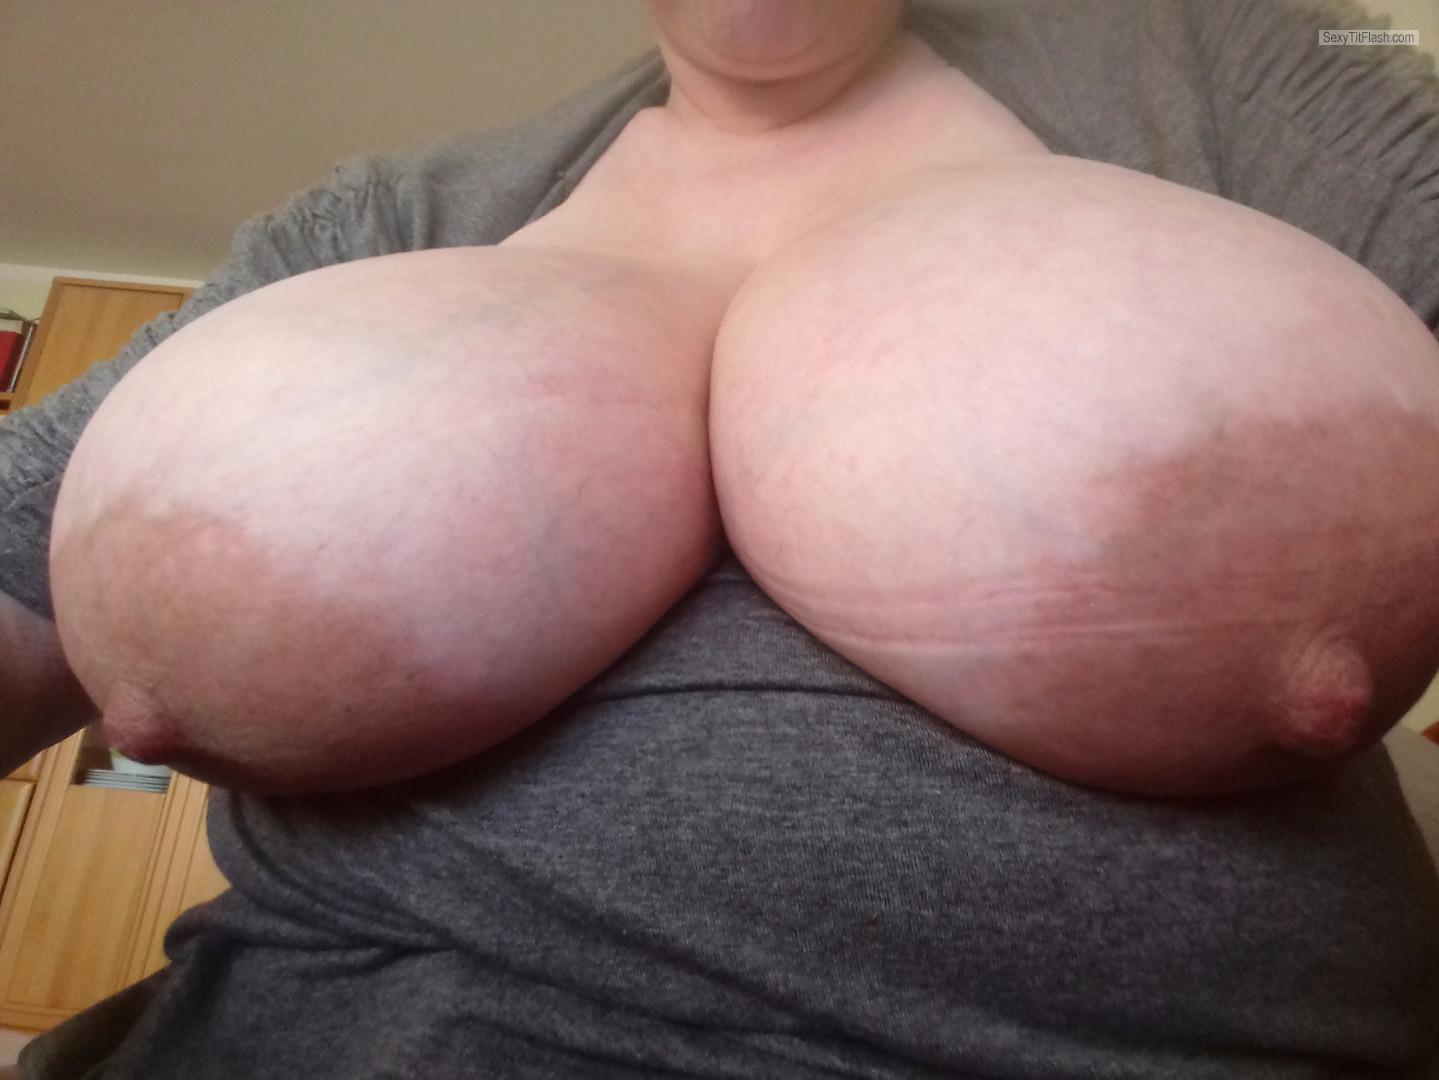 Tit Flash: My Extremely Big Tits (Selfie) - E-center from Germany